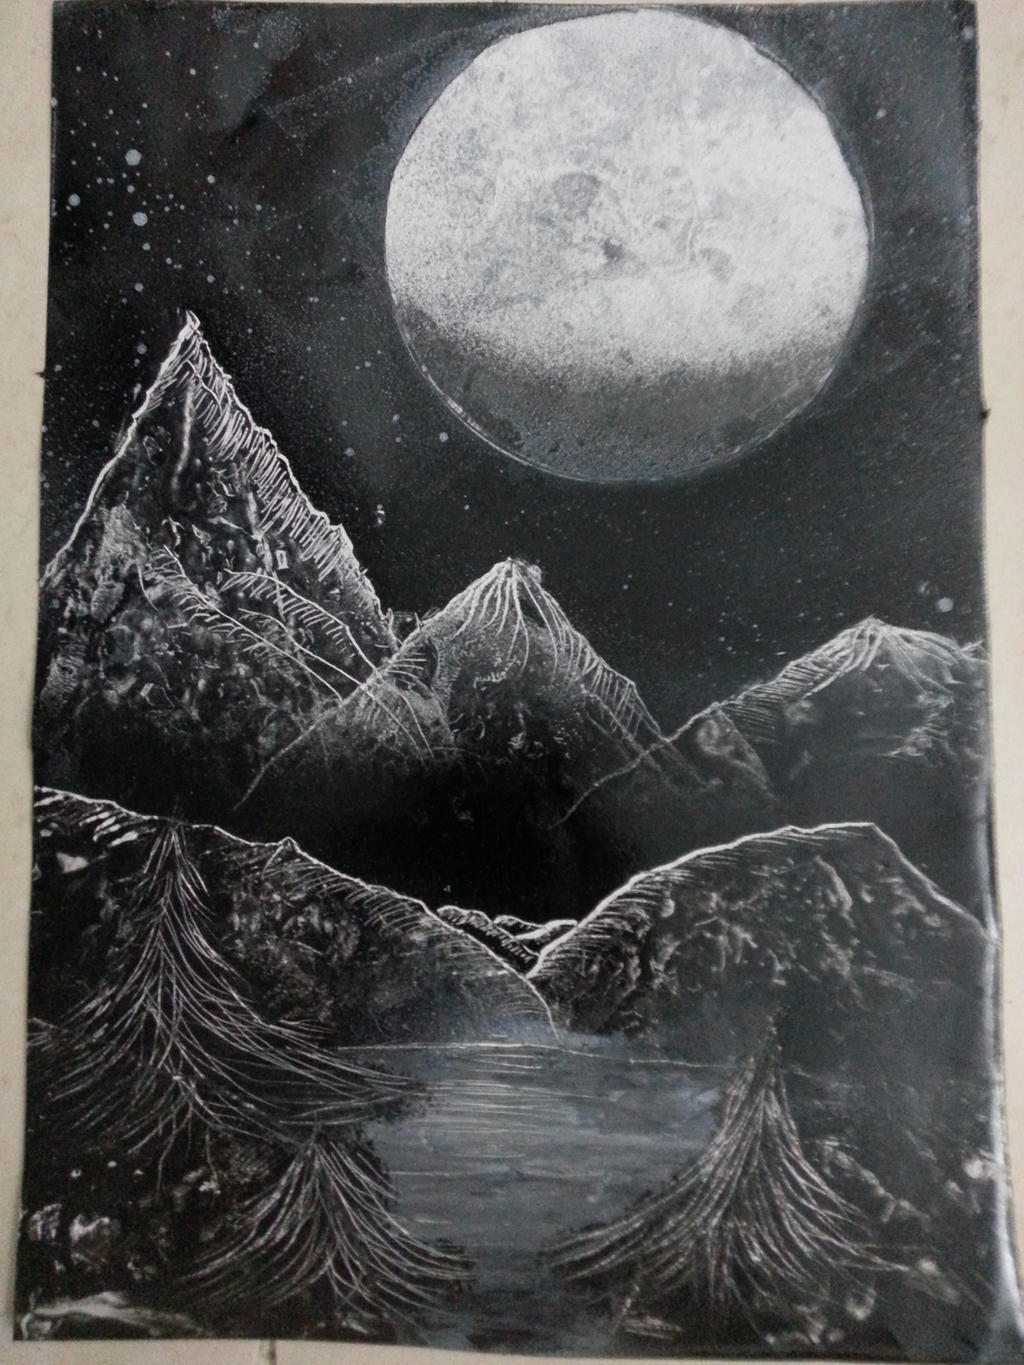 Spray paint art black and white nature scene by for White and black paintings